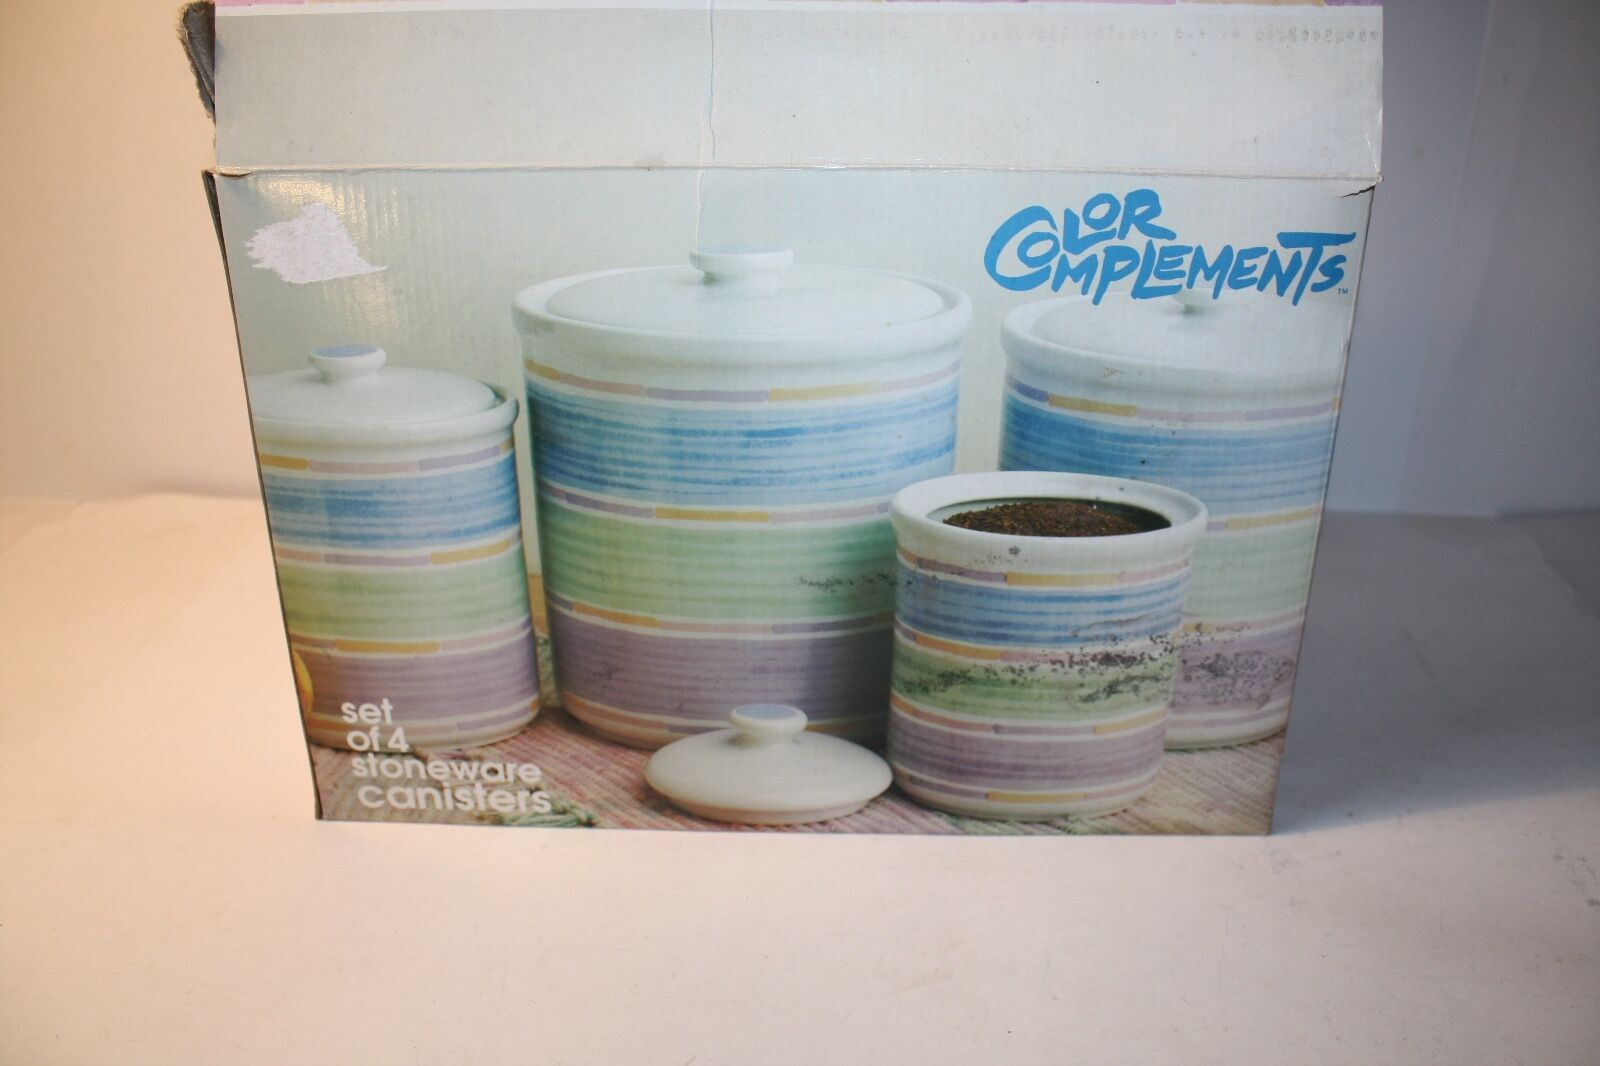 PAUL MARSHALL 4-PIECE Stoneware Canister Set Color Complements w ...